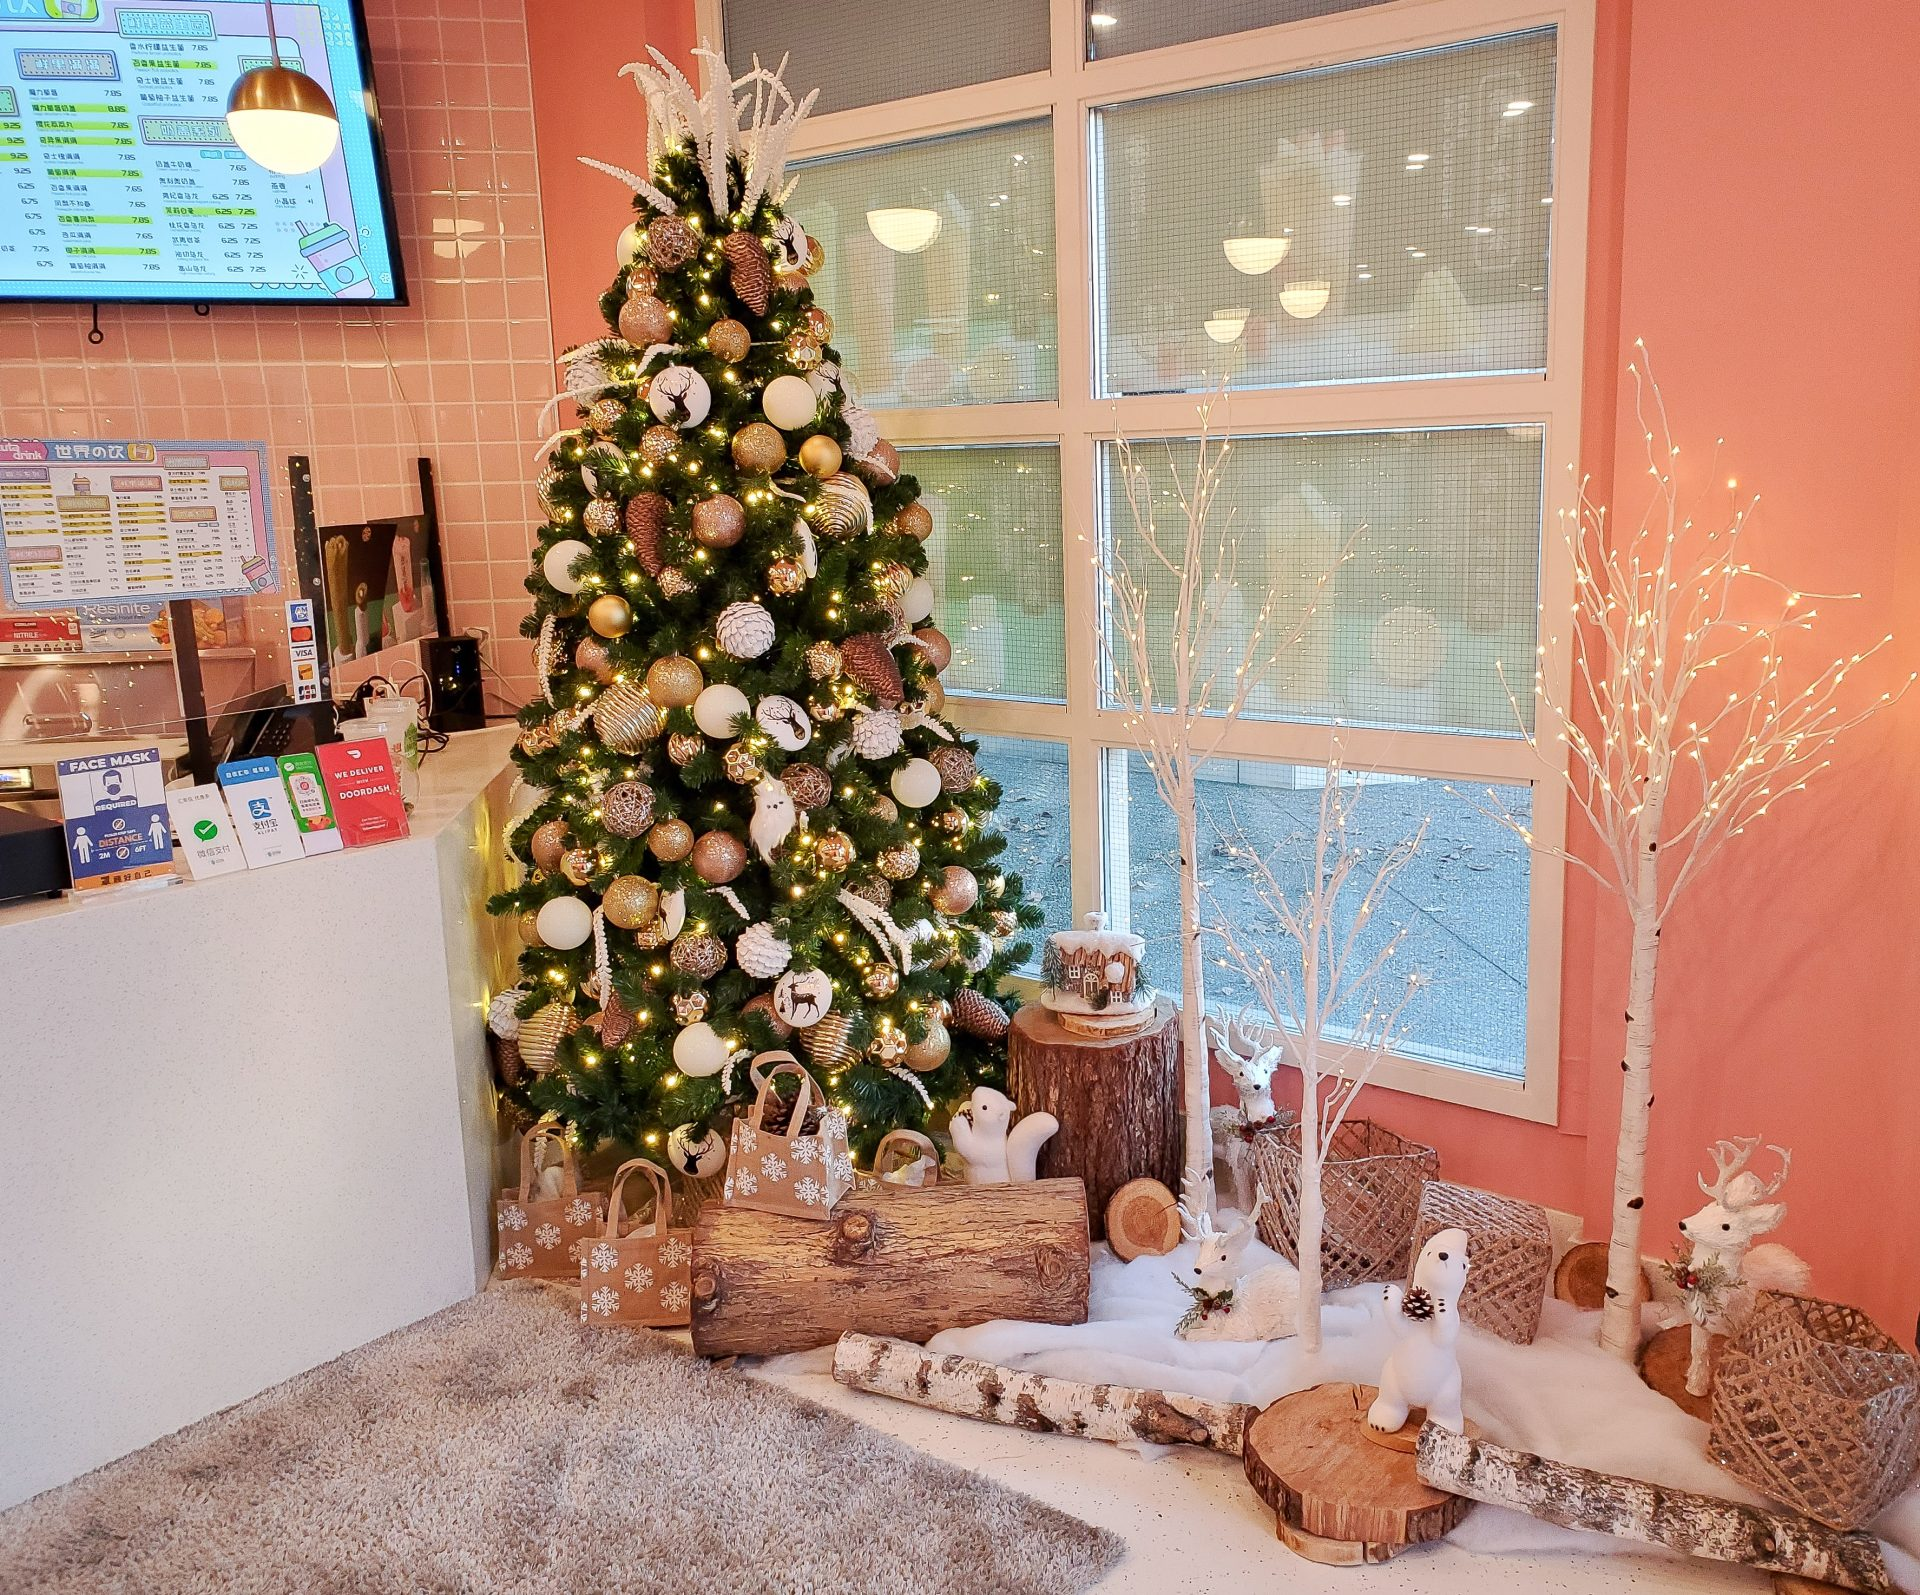 Christmas tree and woodland decor with LED birch trees, snow blanket and wood stumps